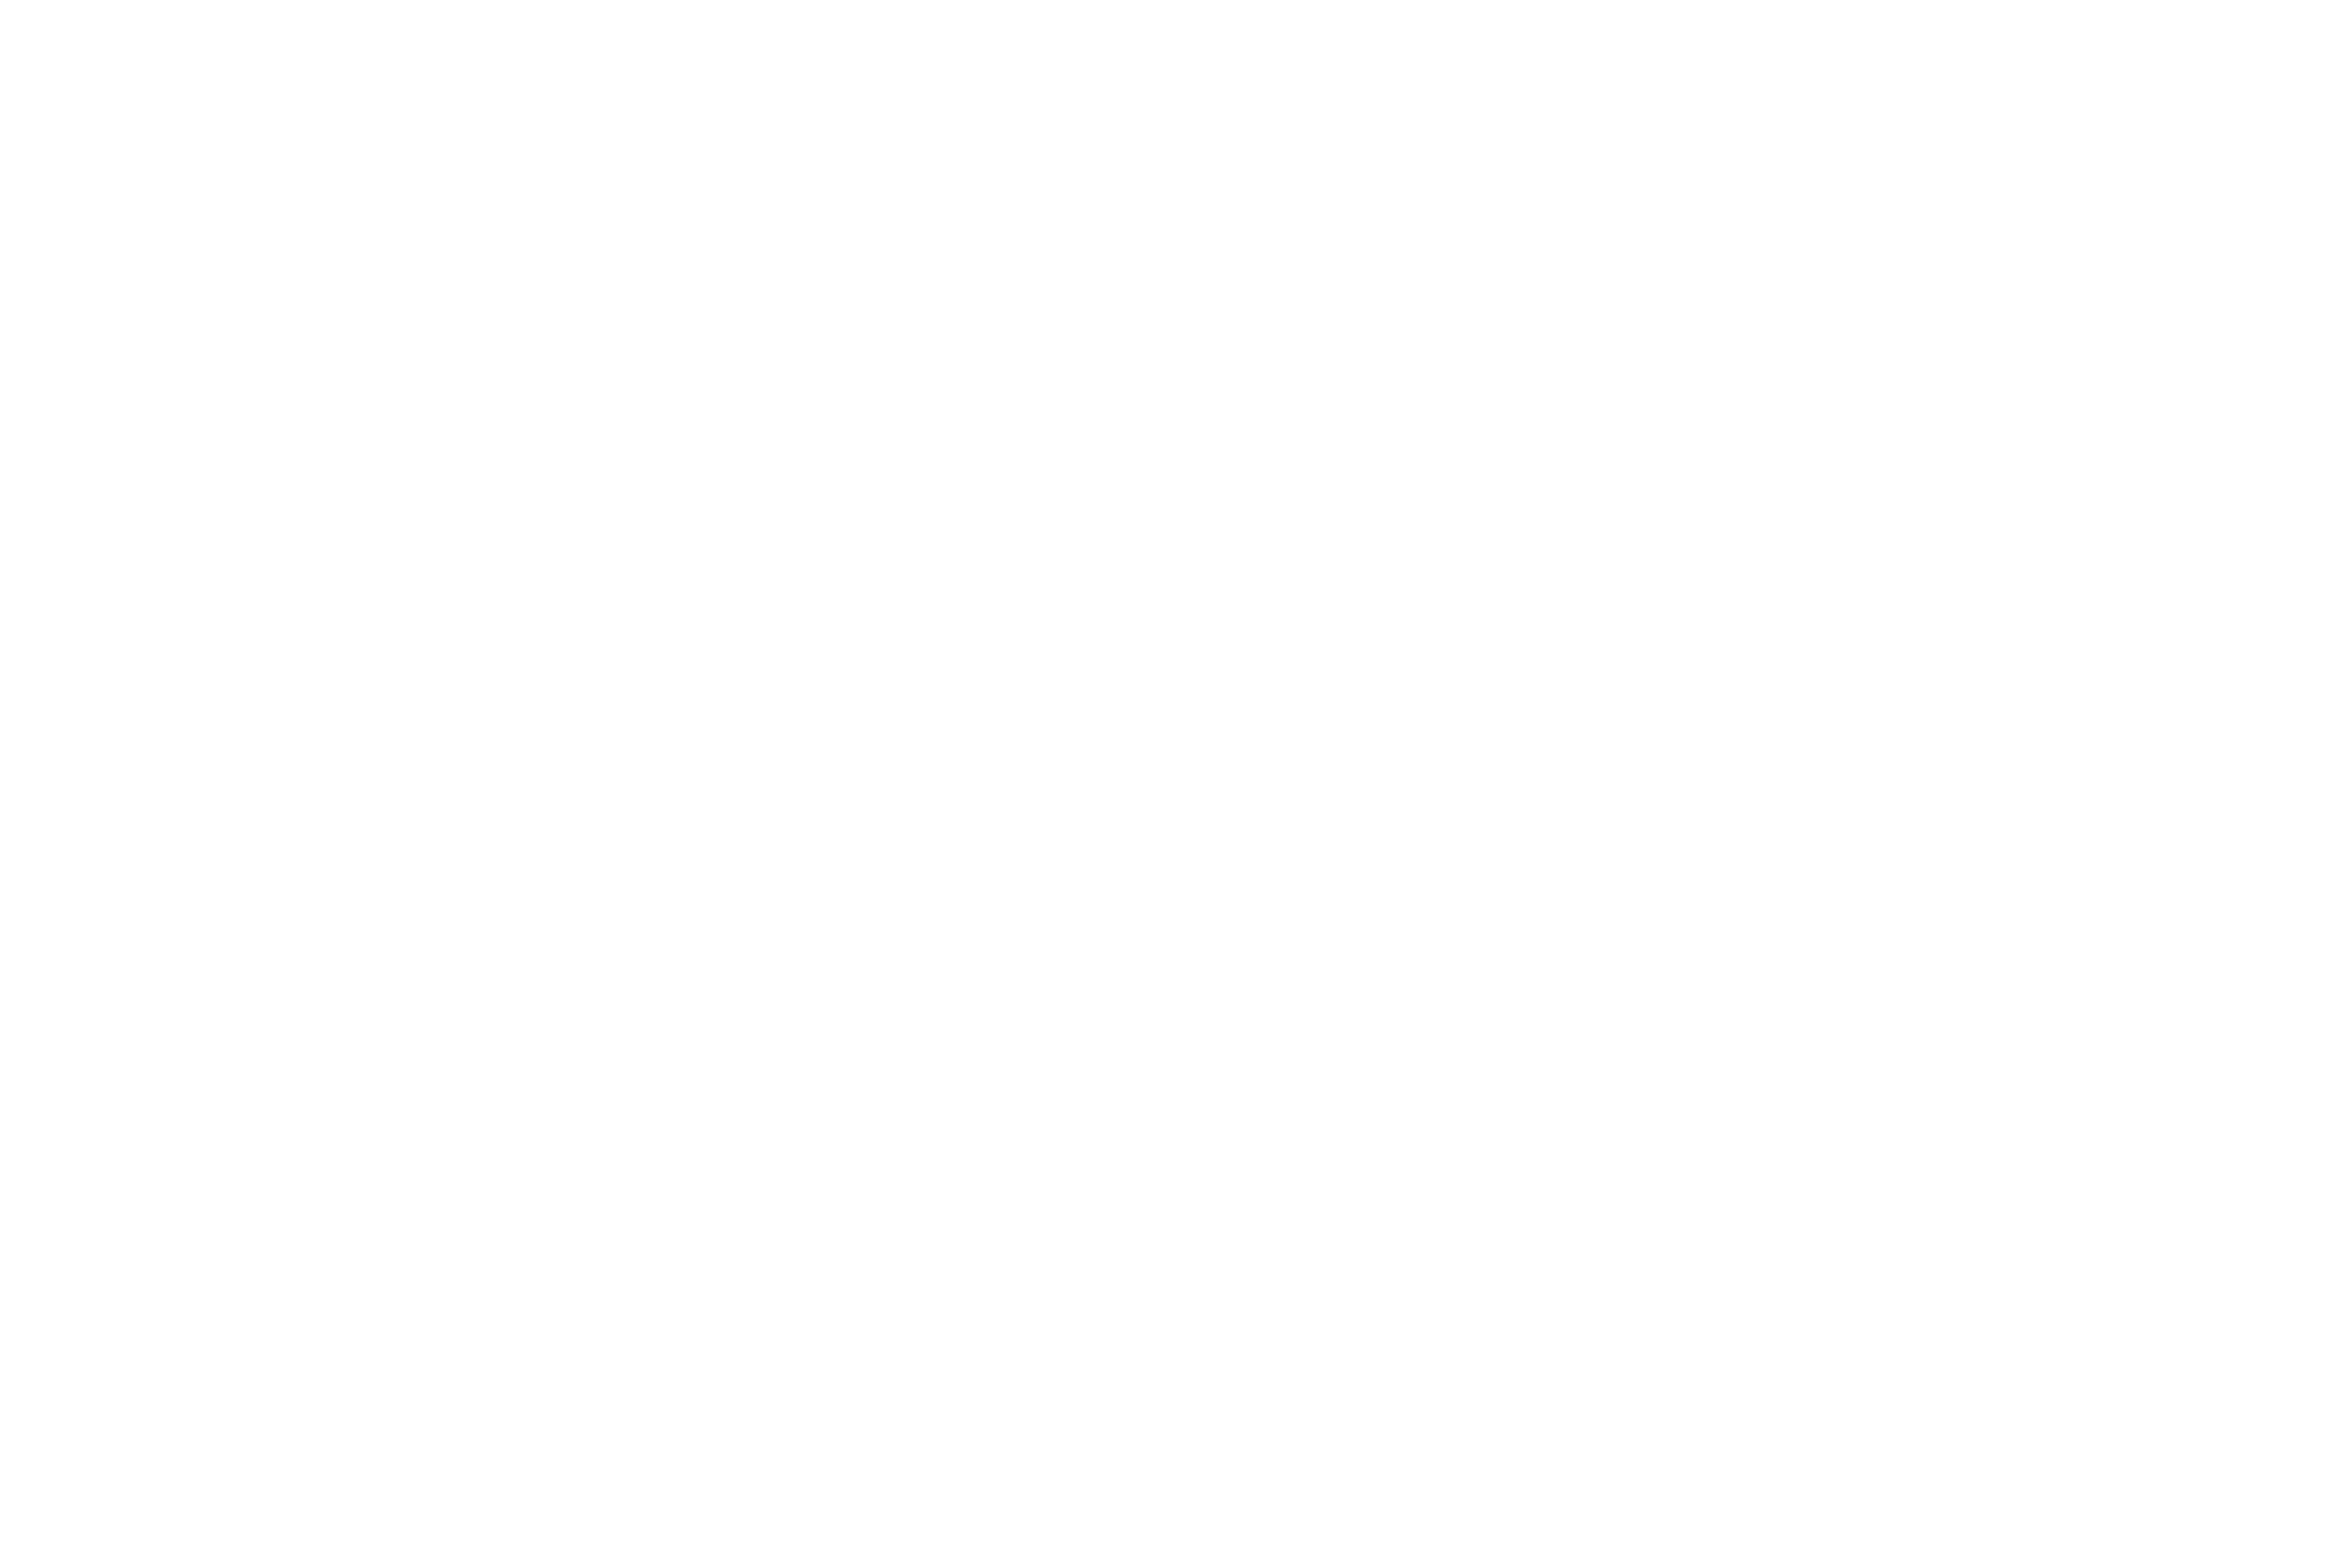 Andrew Mease Photography